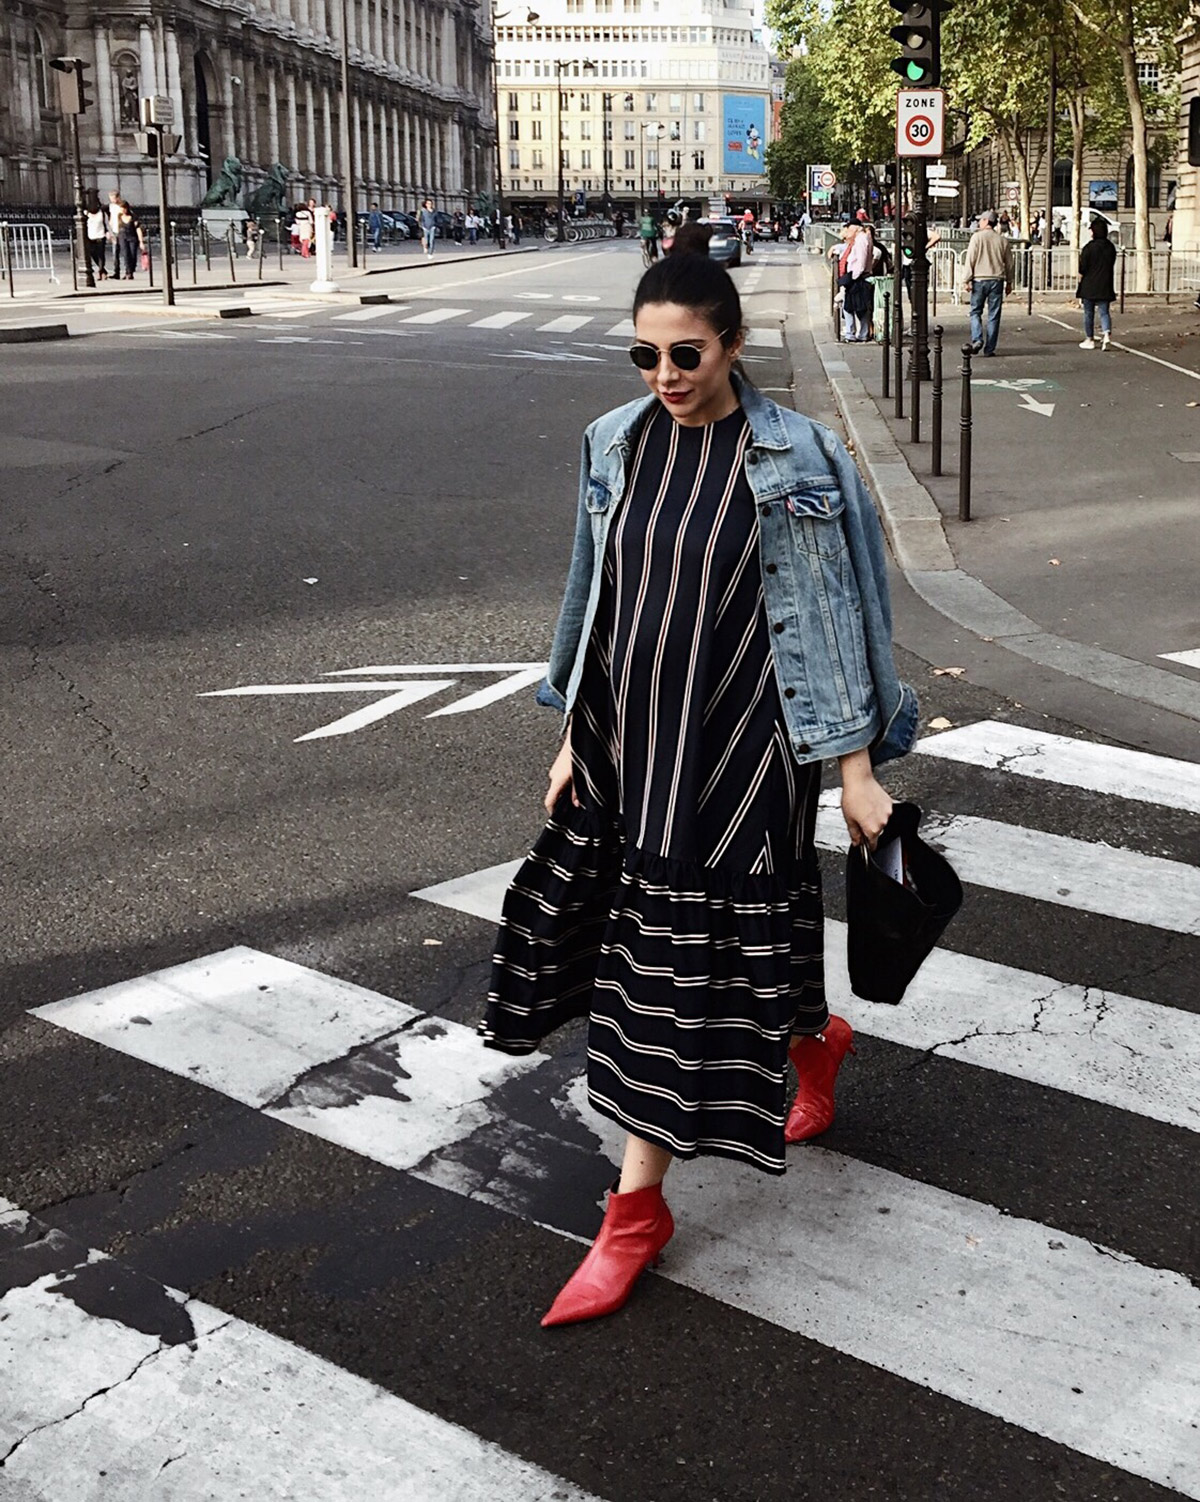 Paris Fashion Week SS18 Streetstyles - Stella Asteria